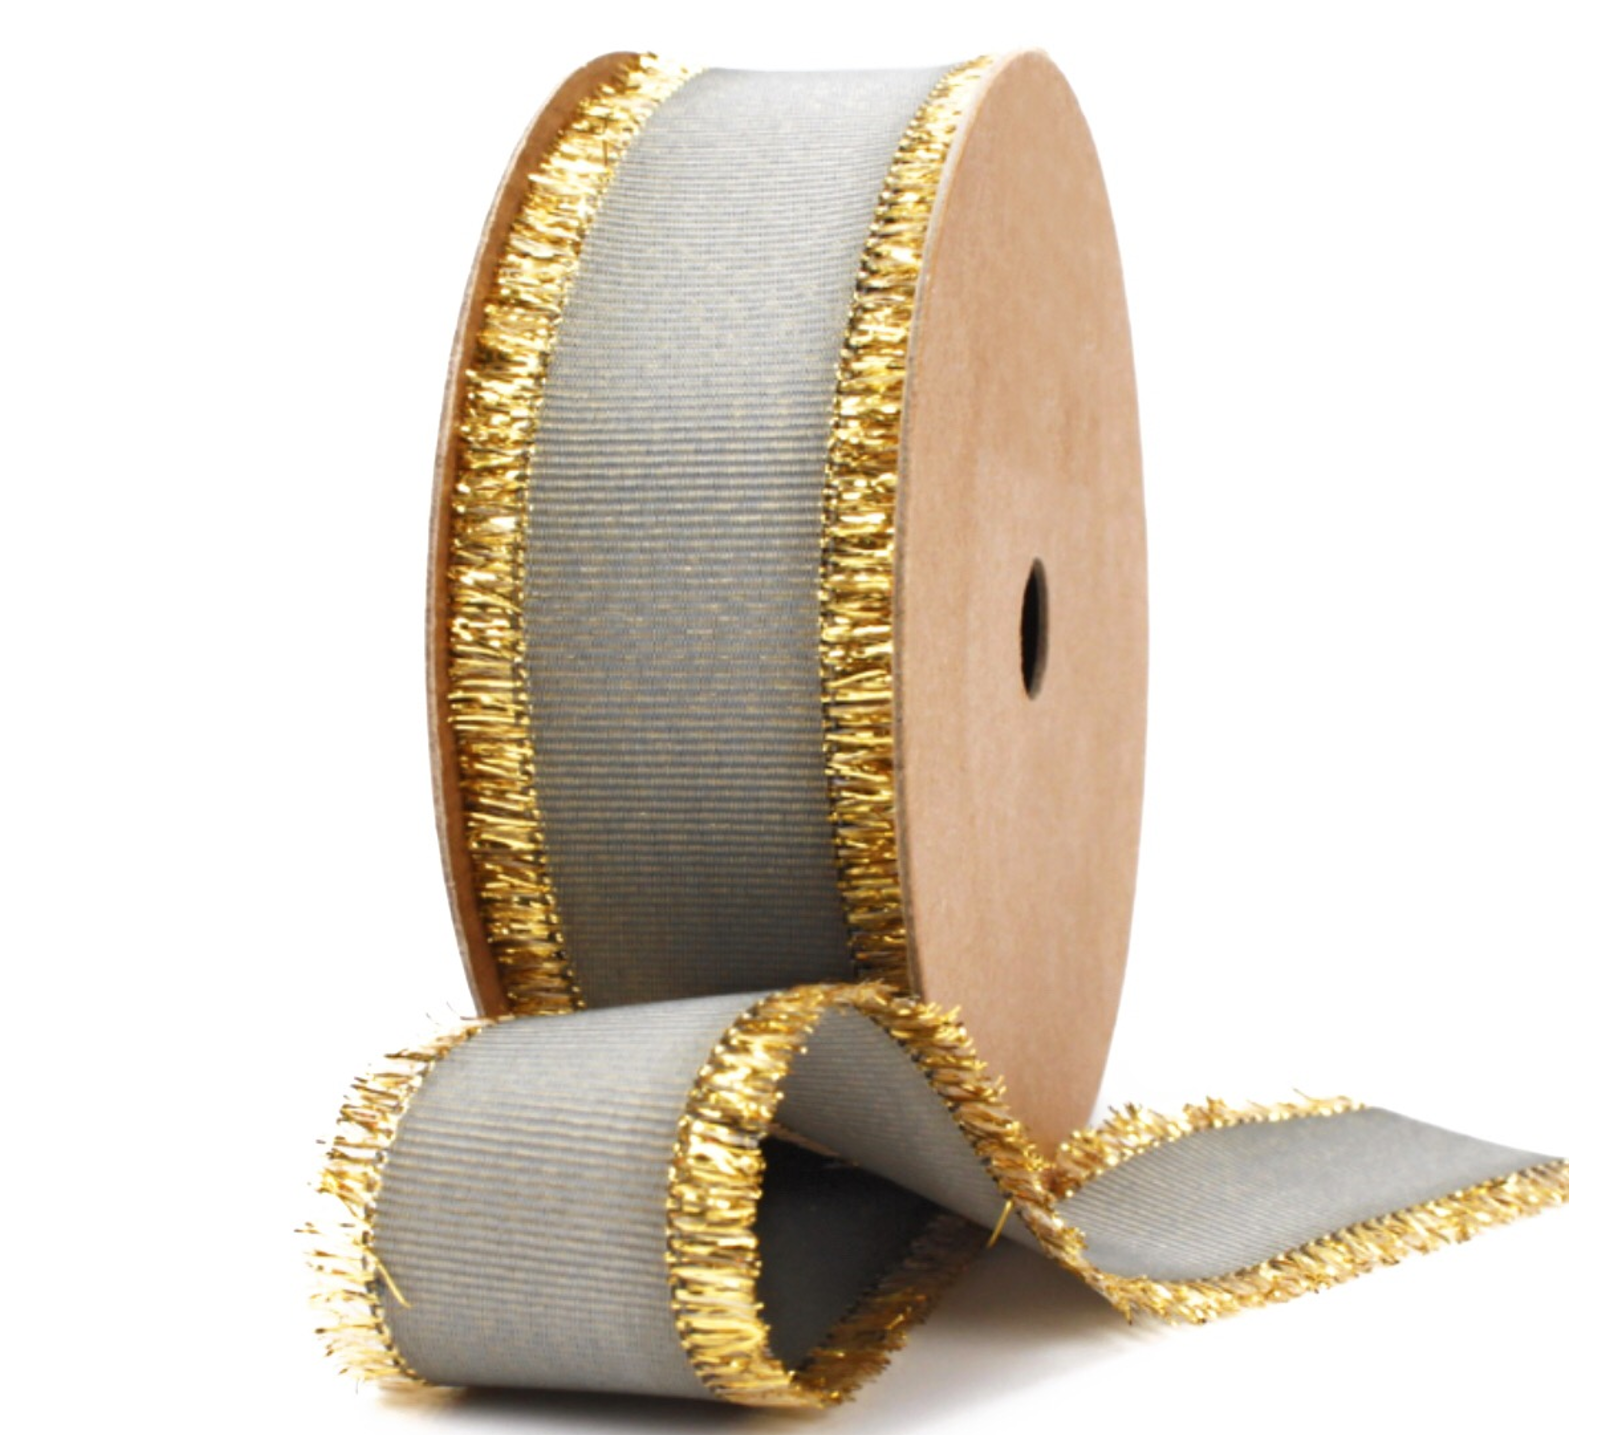 Gray Grosgrain Ribbon with Gold Fringe | Metallic Ribbon for Men's Gifts, Christmas Decor